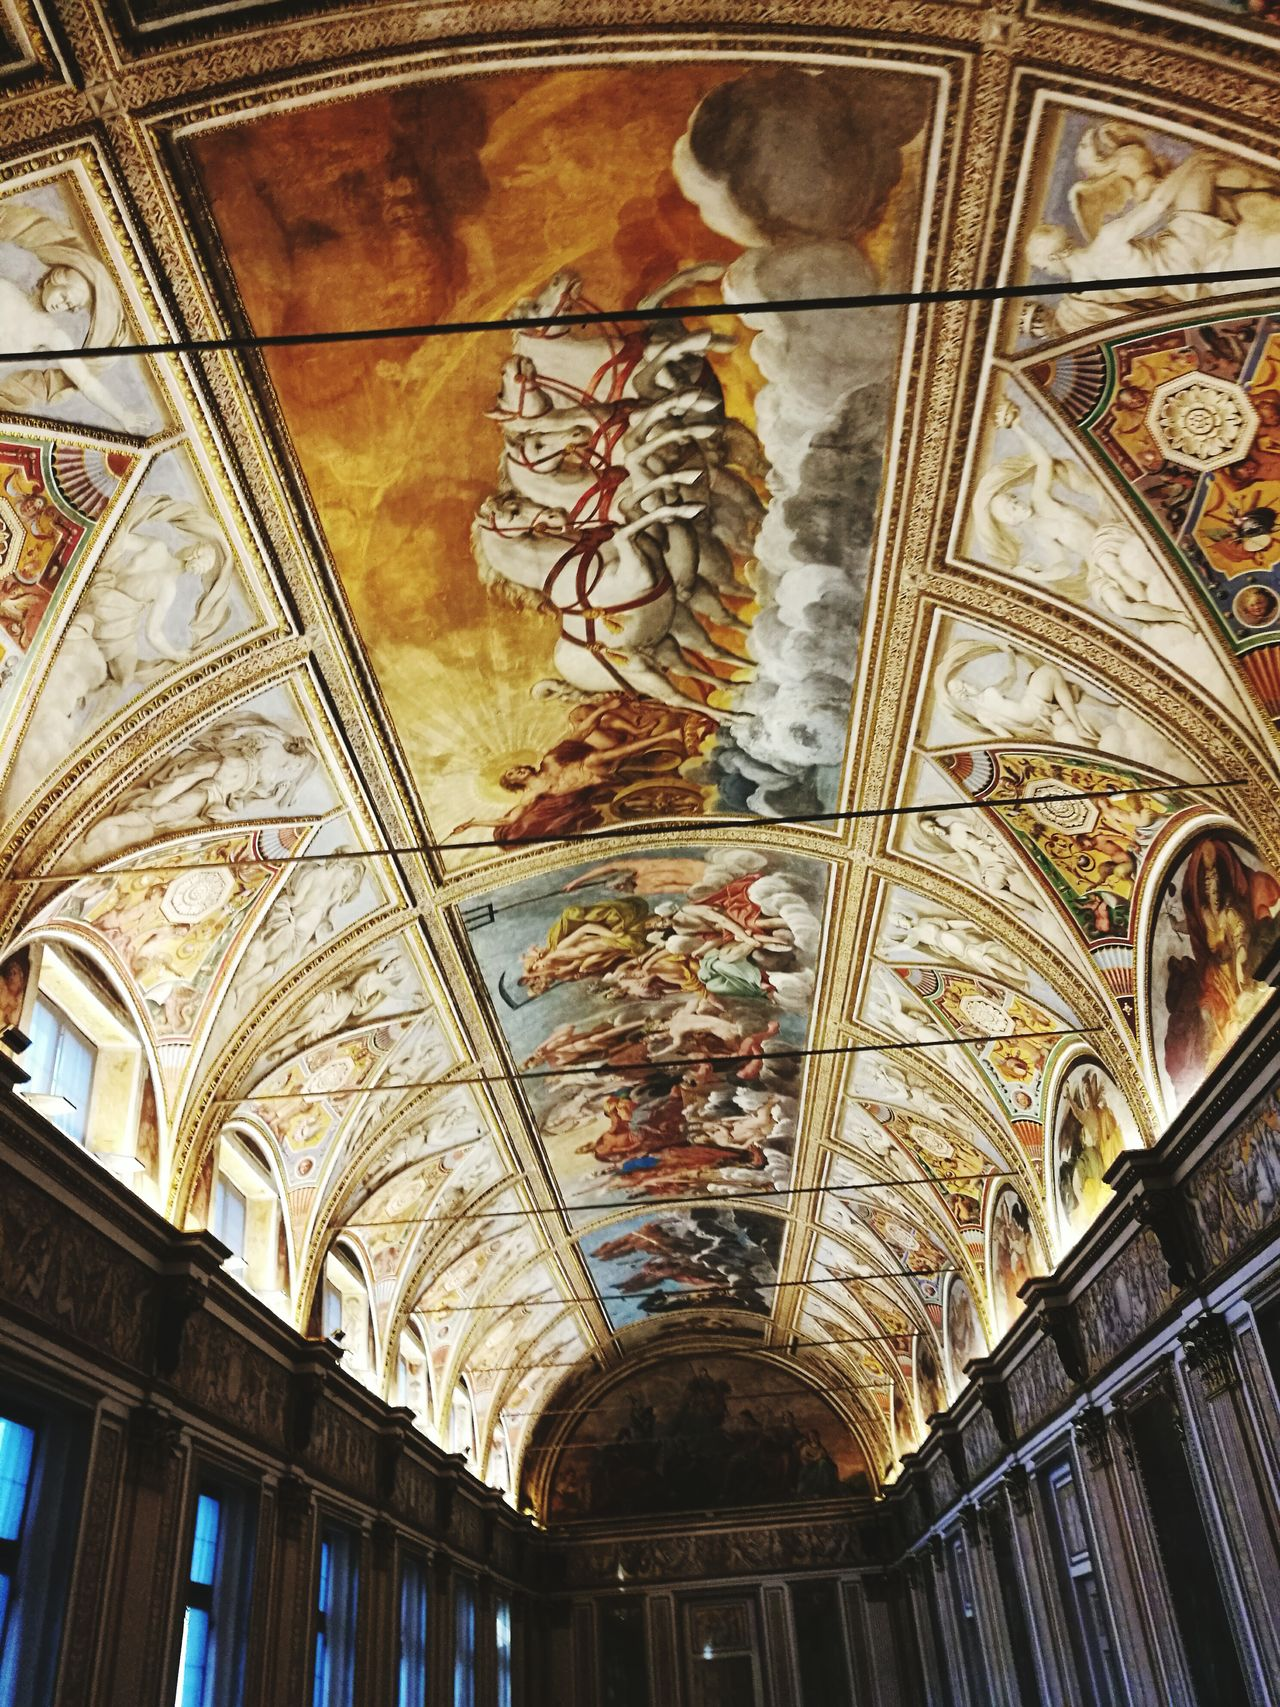 Arte Artist Gallery City Travel Mantova Mantova Creativa Museo Museum Ceiling Travel Destinations Tourism Indoors  Low Angle View Architecture History Religion Fresco Built Structure No People Place Of Worship Day Architecture And Art Art Museum